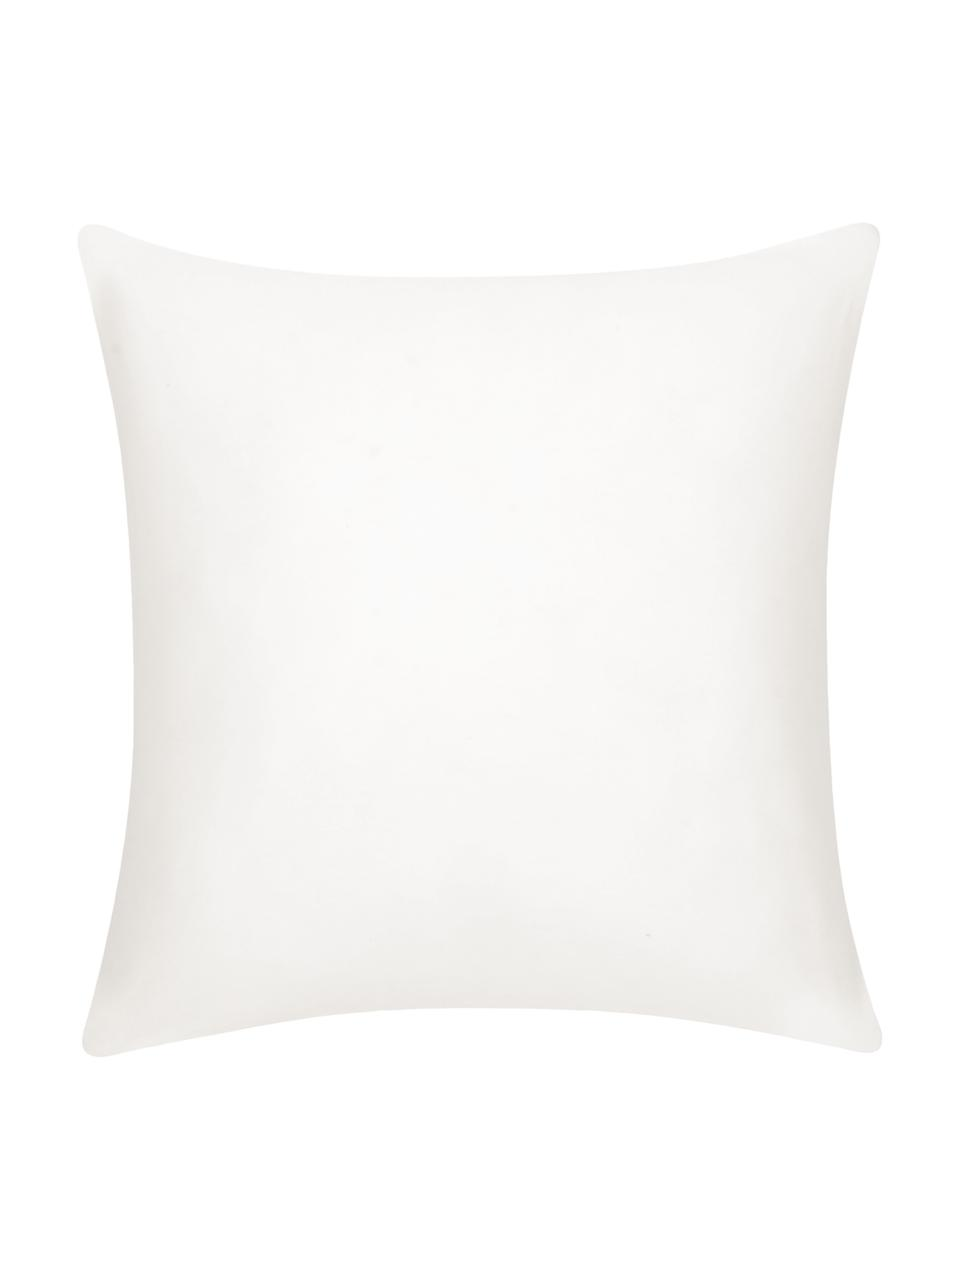 Federa arredo in cotone bianco Mads, 100% cotone, Bianco, Larg. 40 x Lung. 40 cm